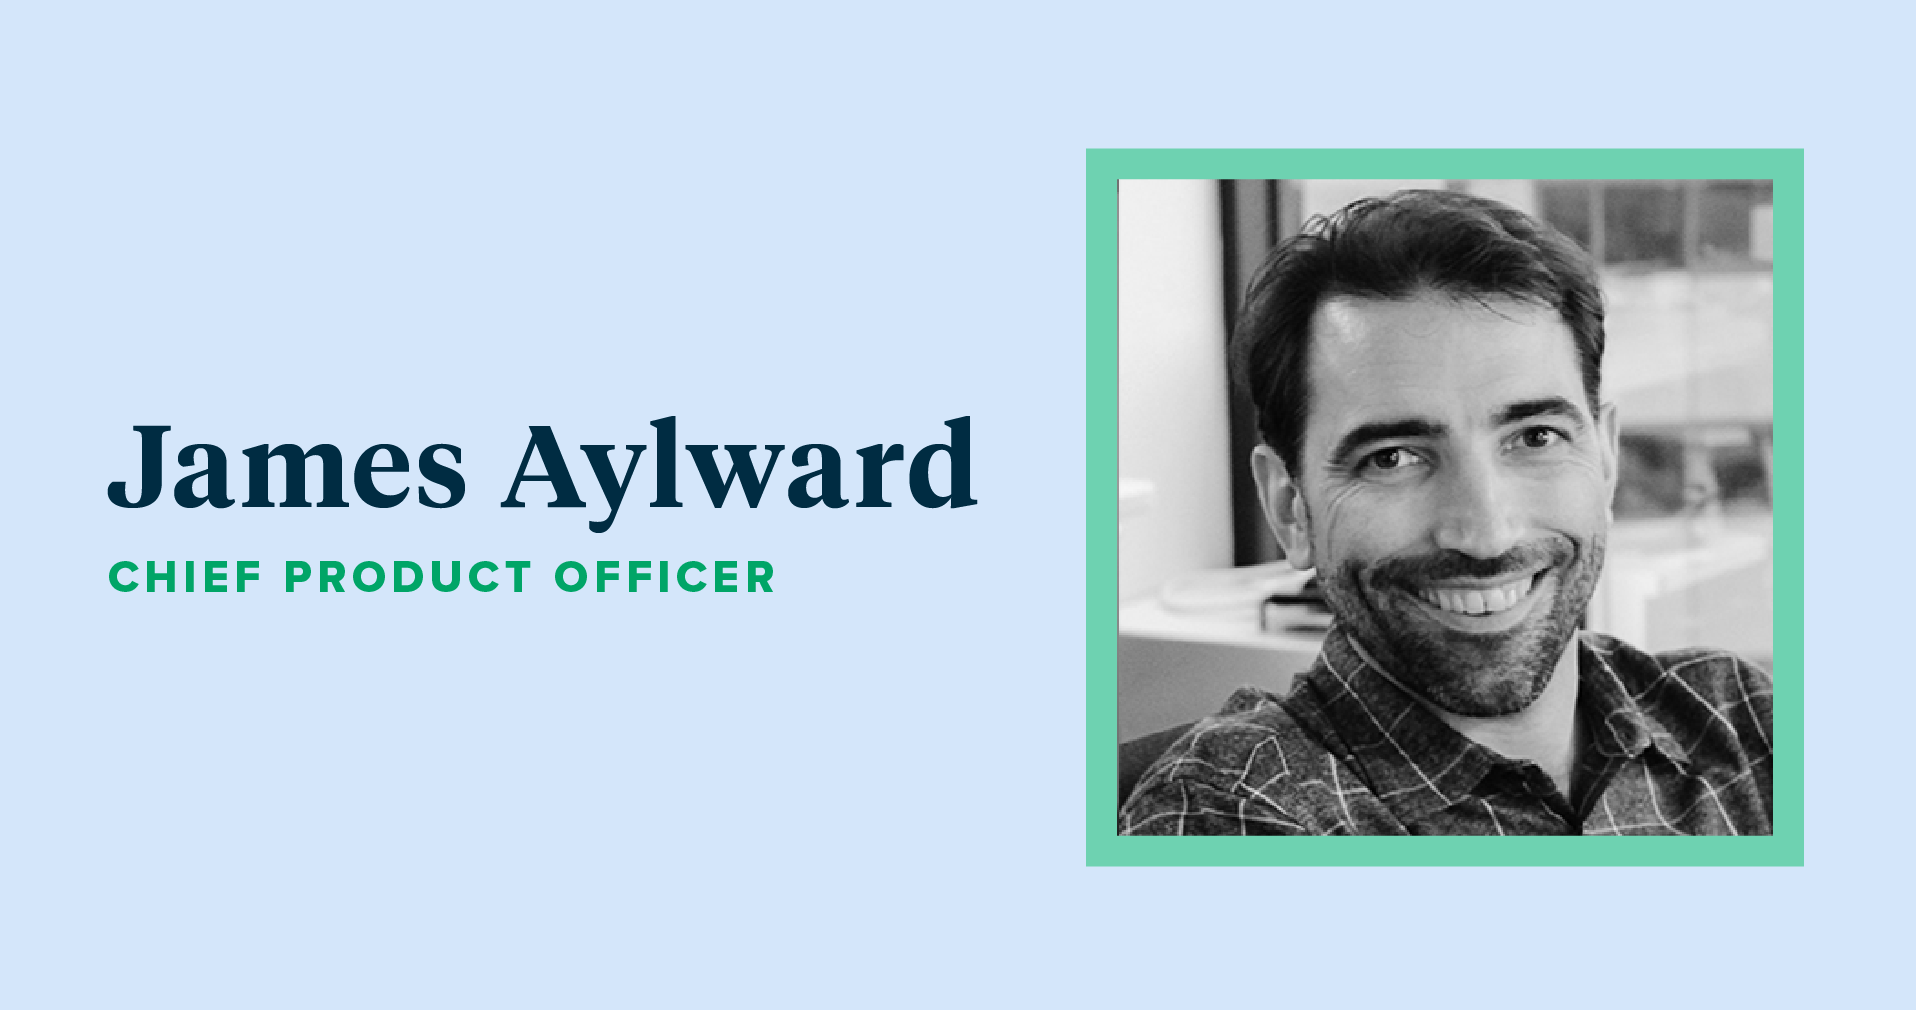 A photo of James Aylward, TpT's new Chief Product Officer